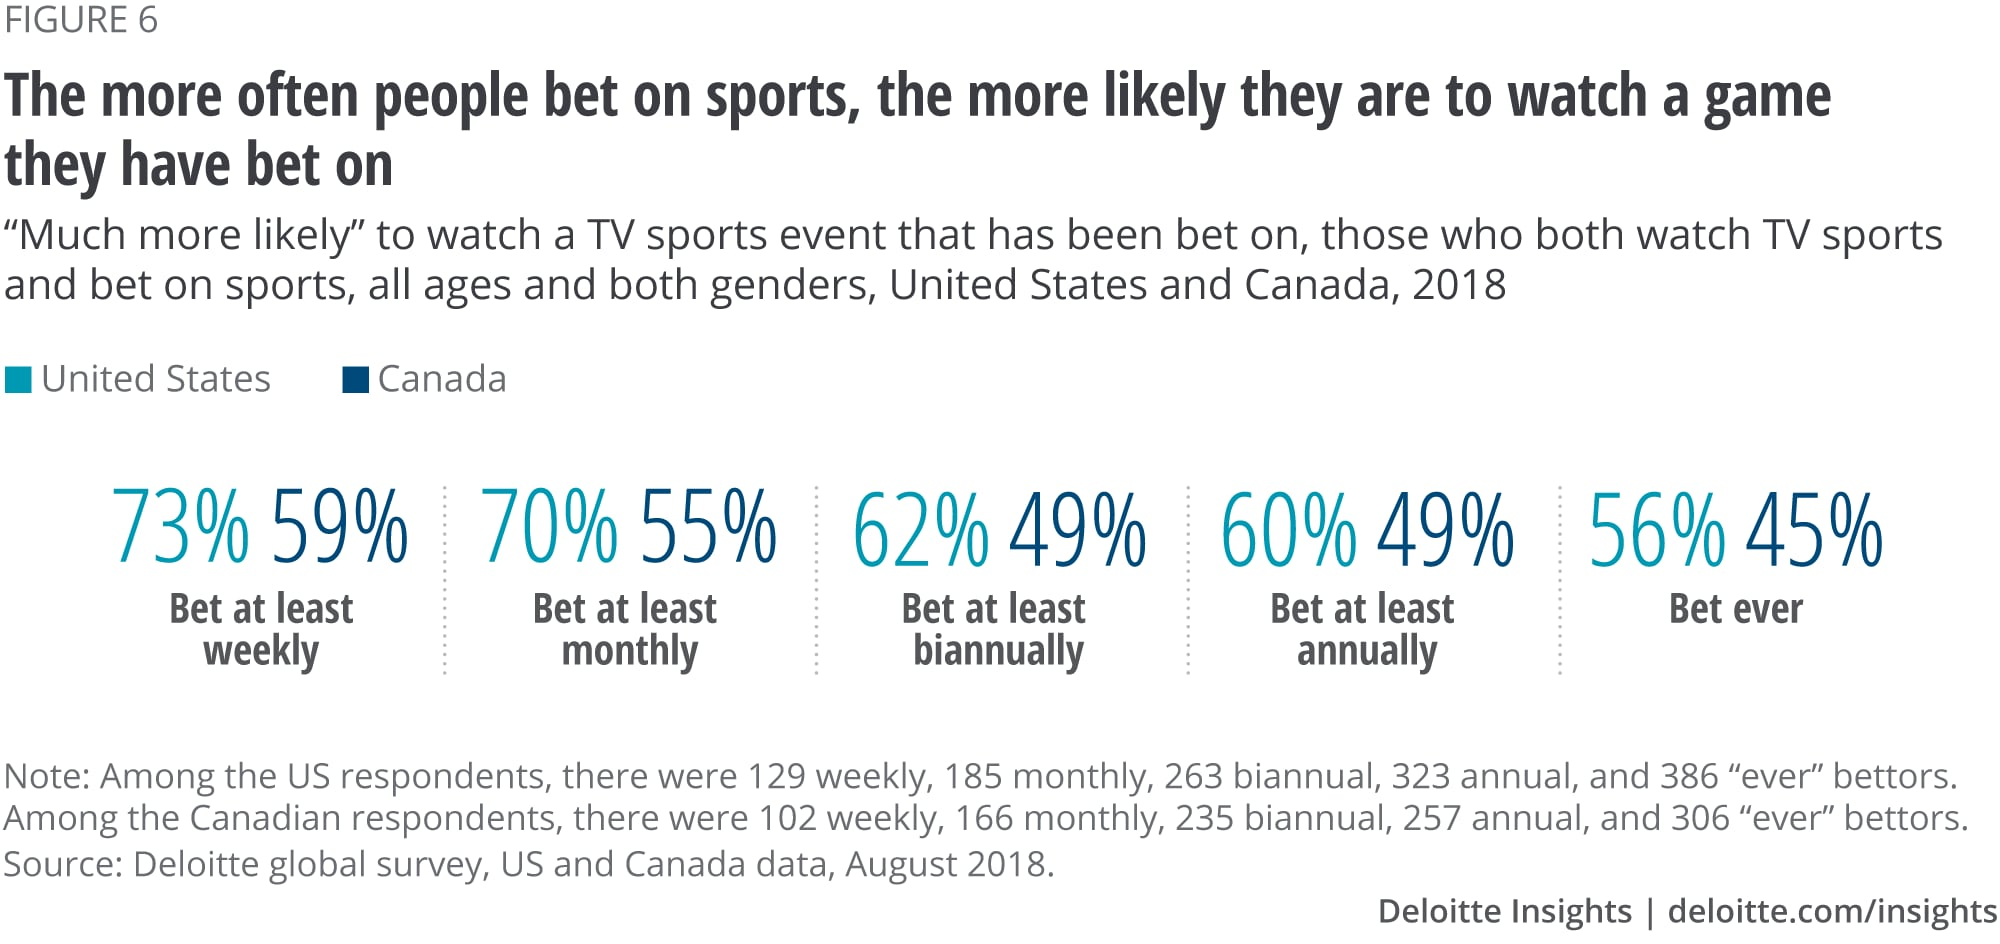 The more often people bet on sports, the more likely they are to watch a game they have bet on